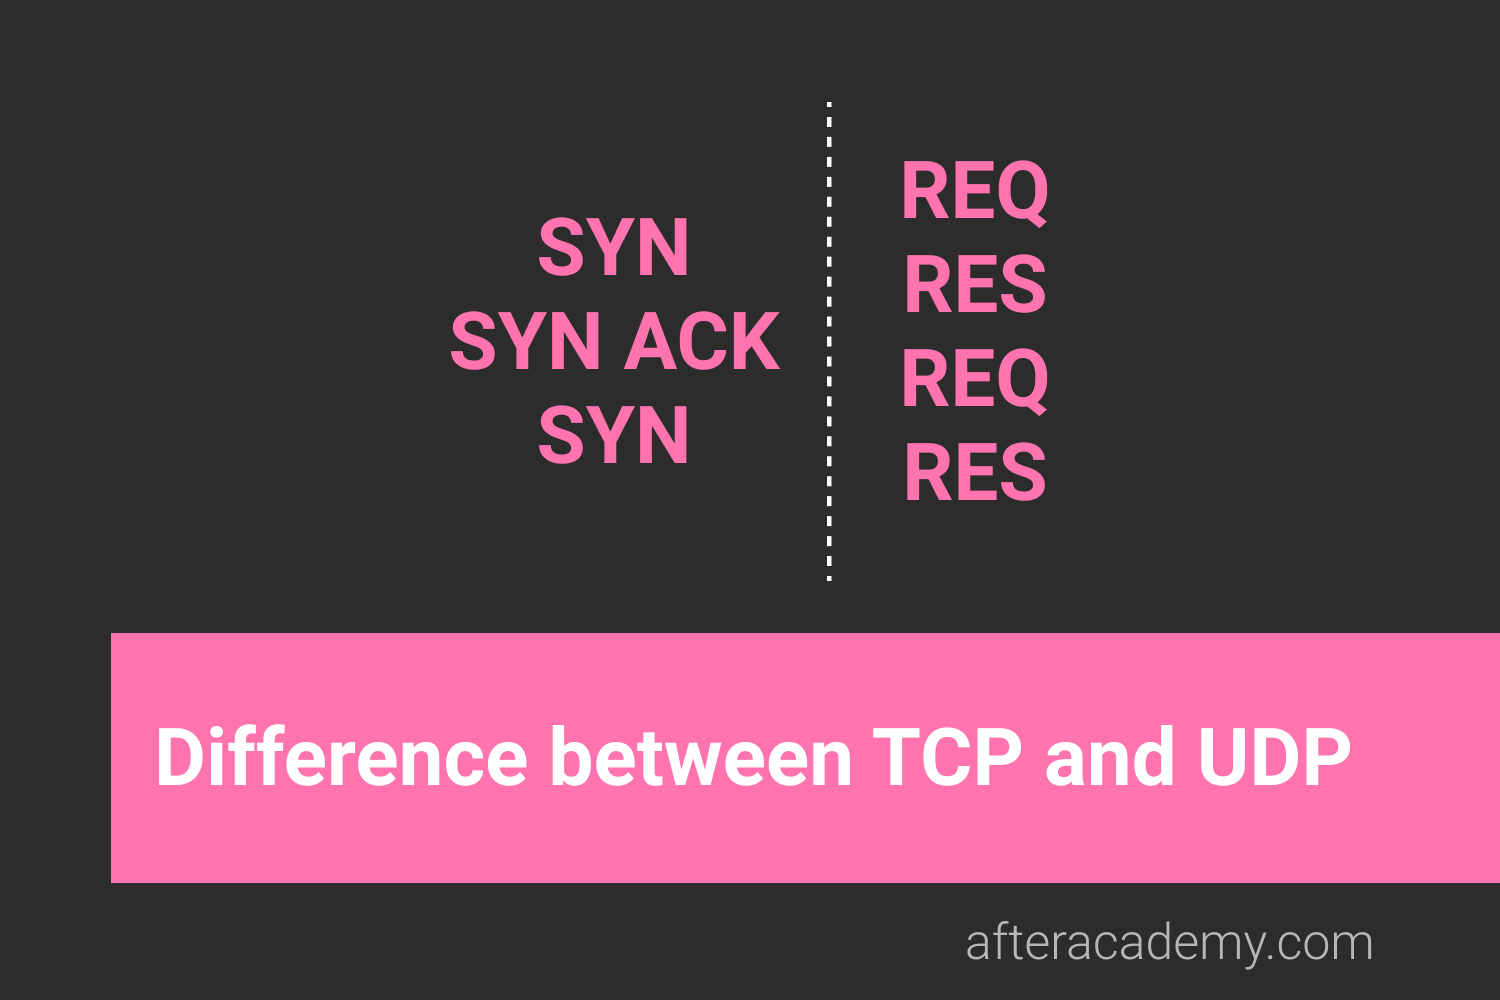 What is the difference between TCP and UDP?